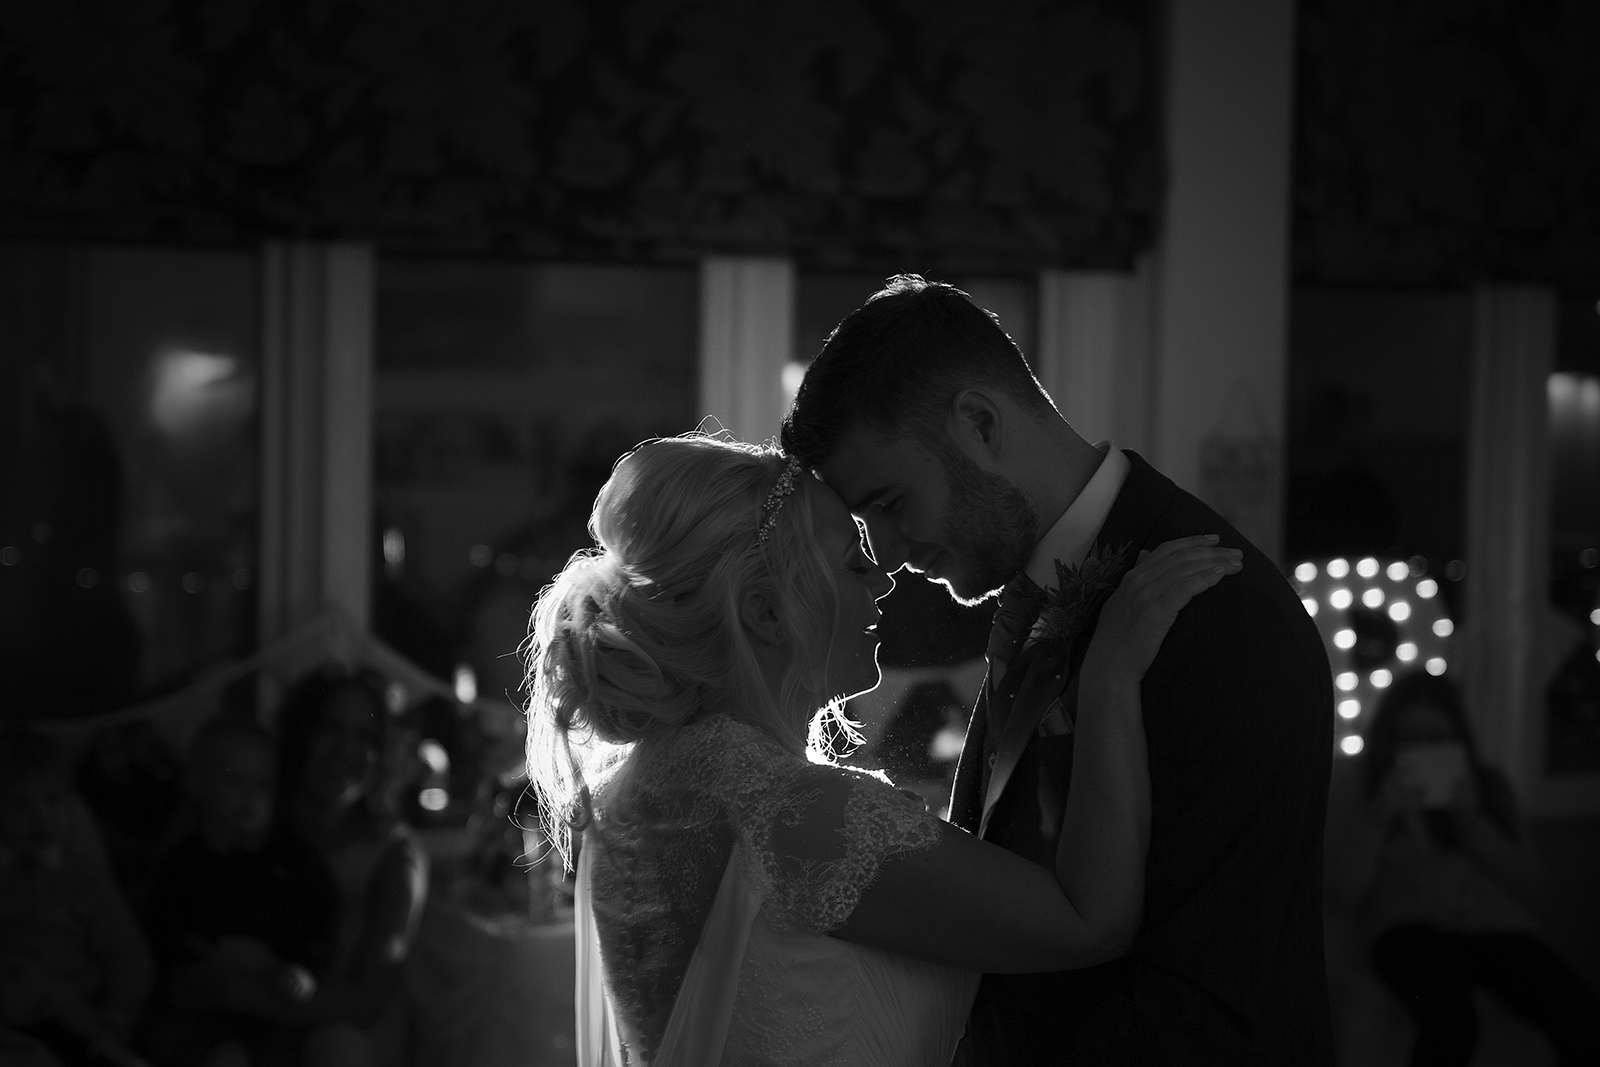 First Dance wedding photography, taken at the St Ives Bay Hotel, St Ives, Cornwall